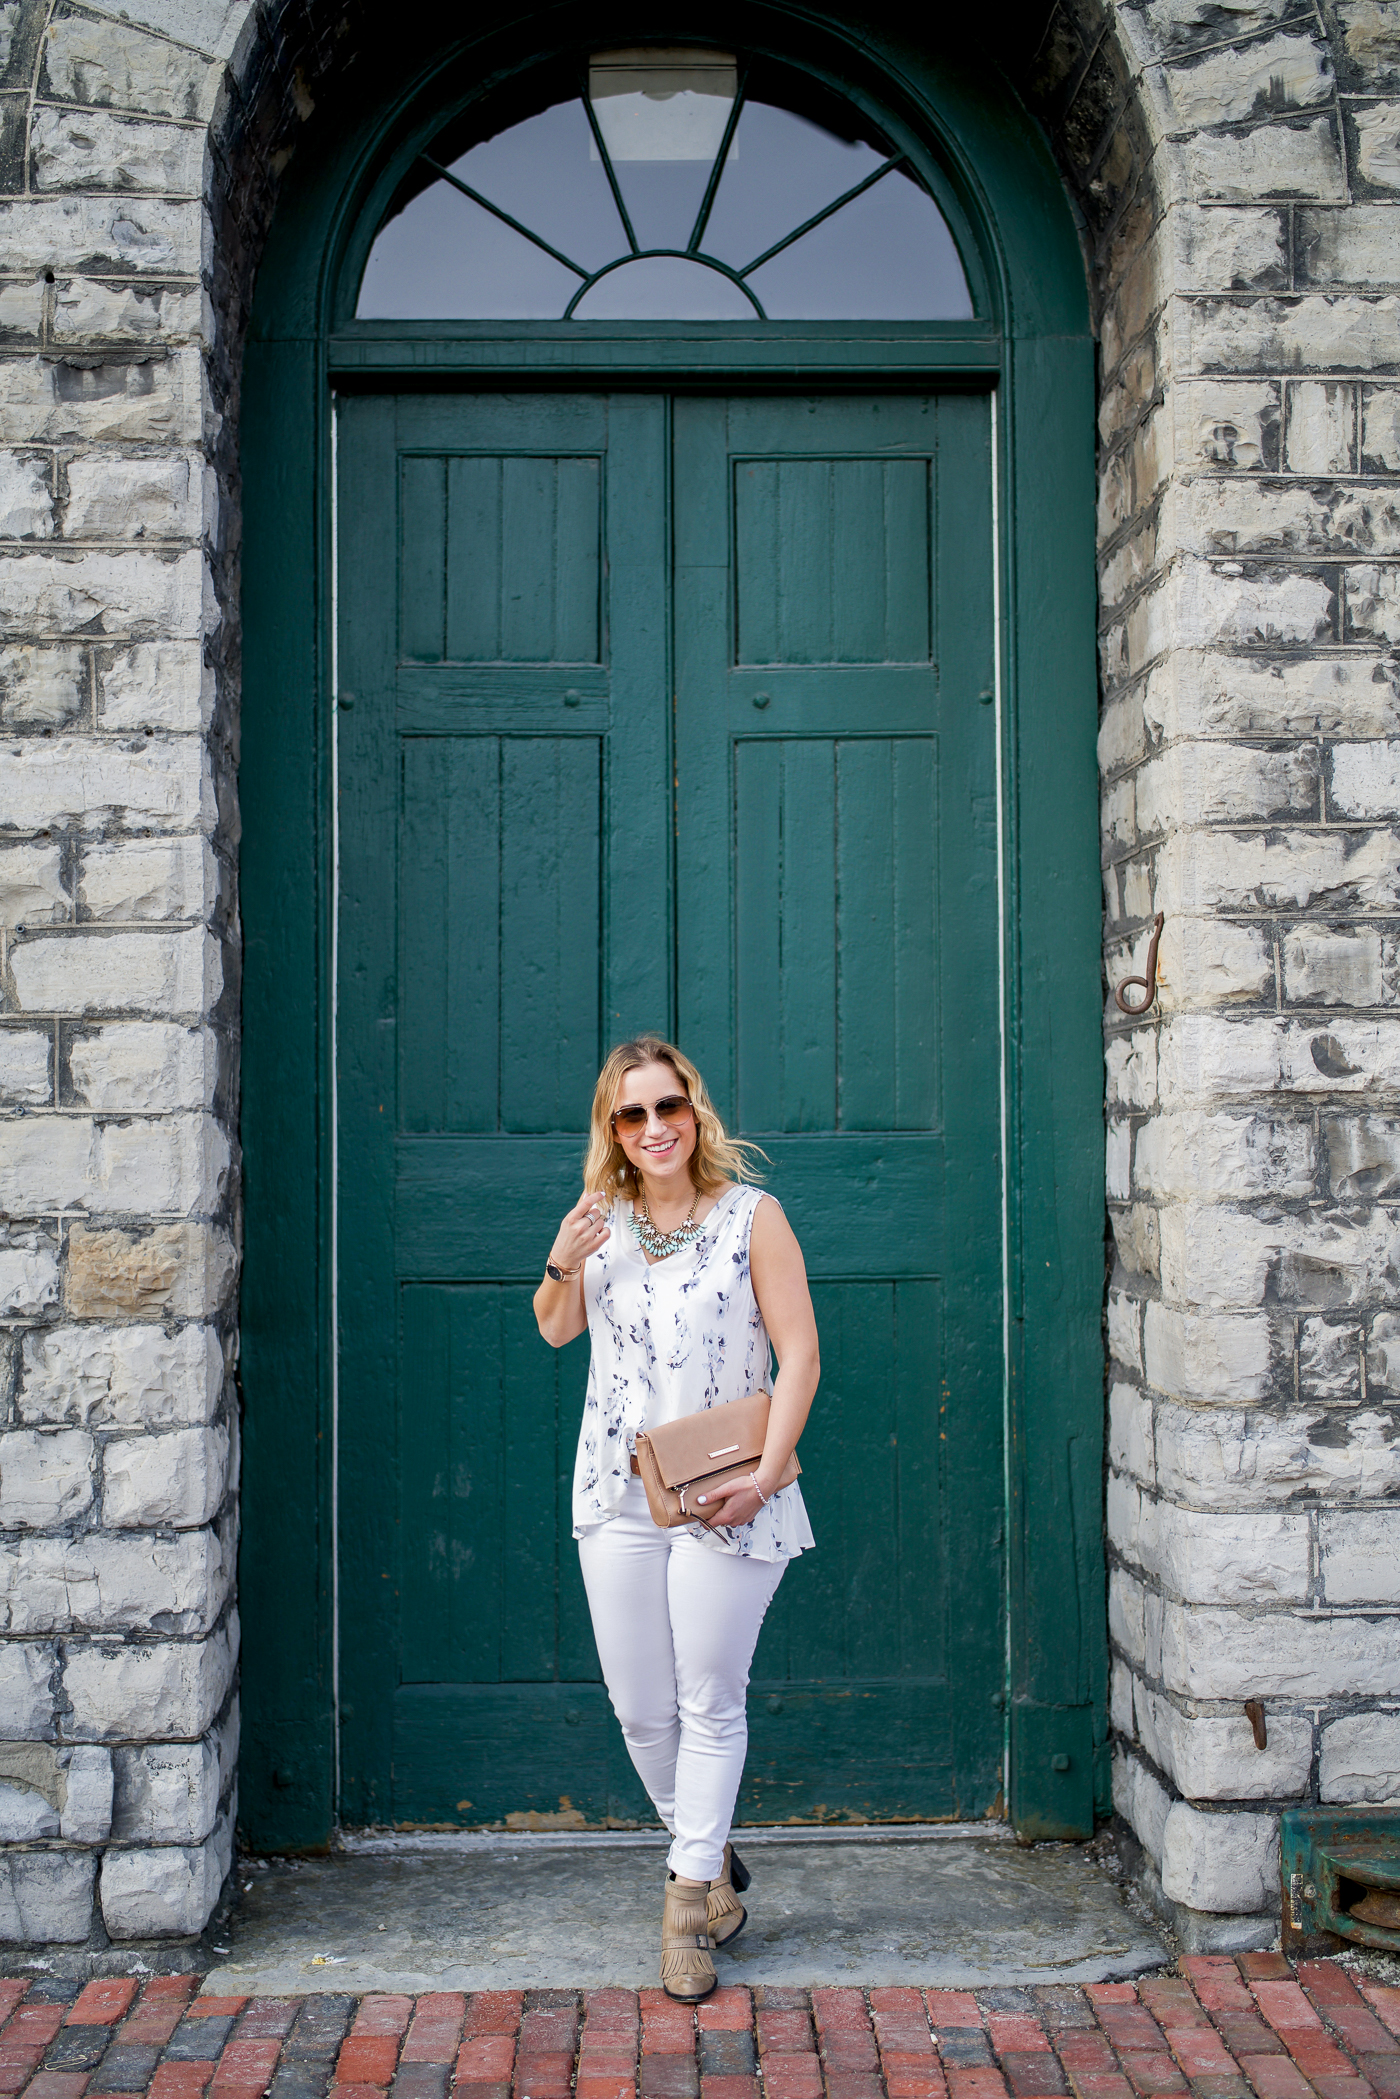 Toronto fashion blogger shoots a spring outfit in the Distillery District